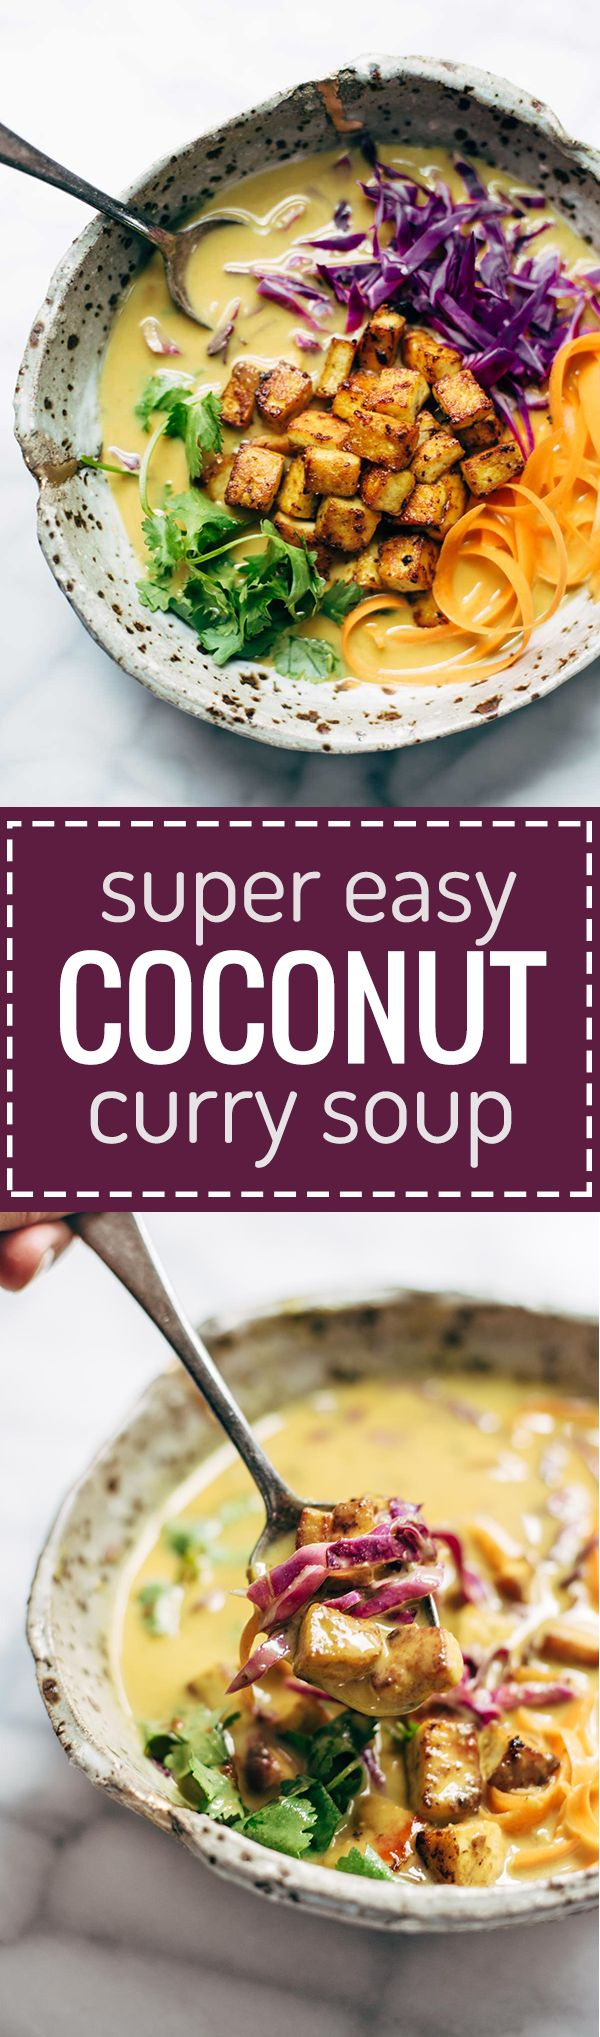 Coconut Curry Soup - this easy recipe can be made with almost ANY vegetables you have on hand! Silky-smooth and full of flavor. Vegetarian and vegan. | @andwhatelse